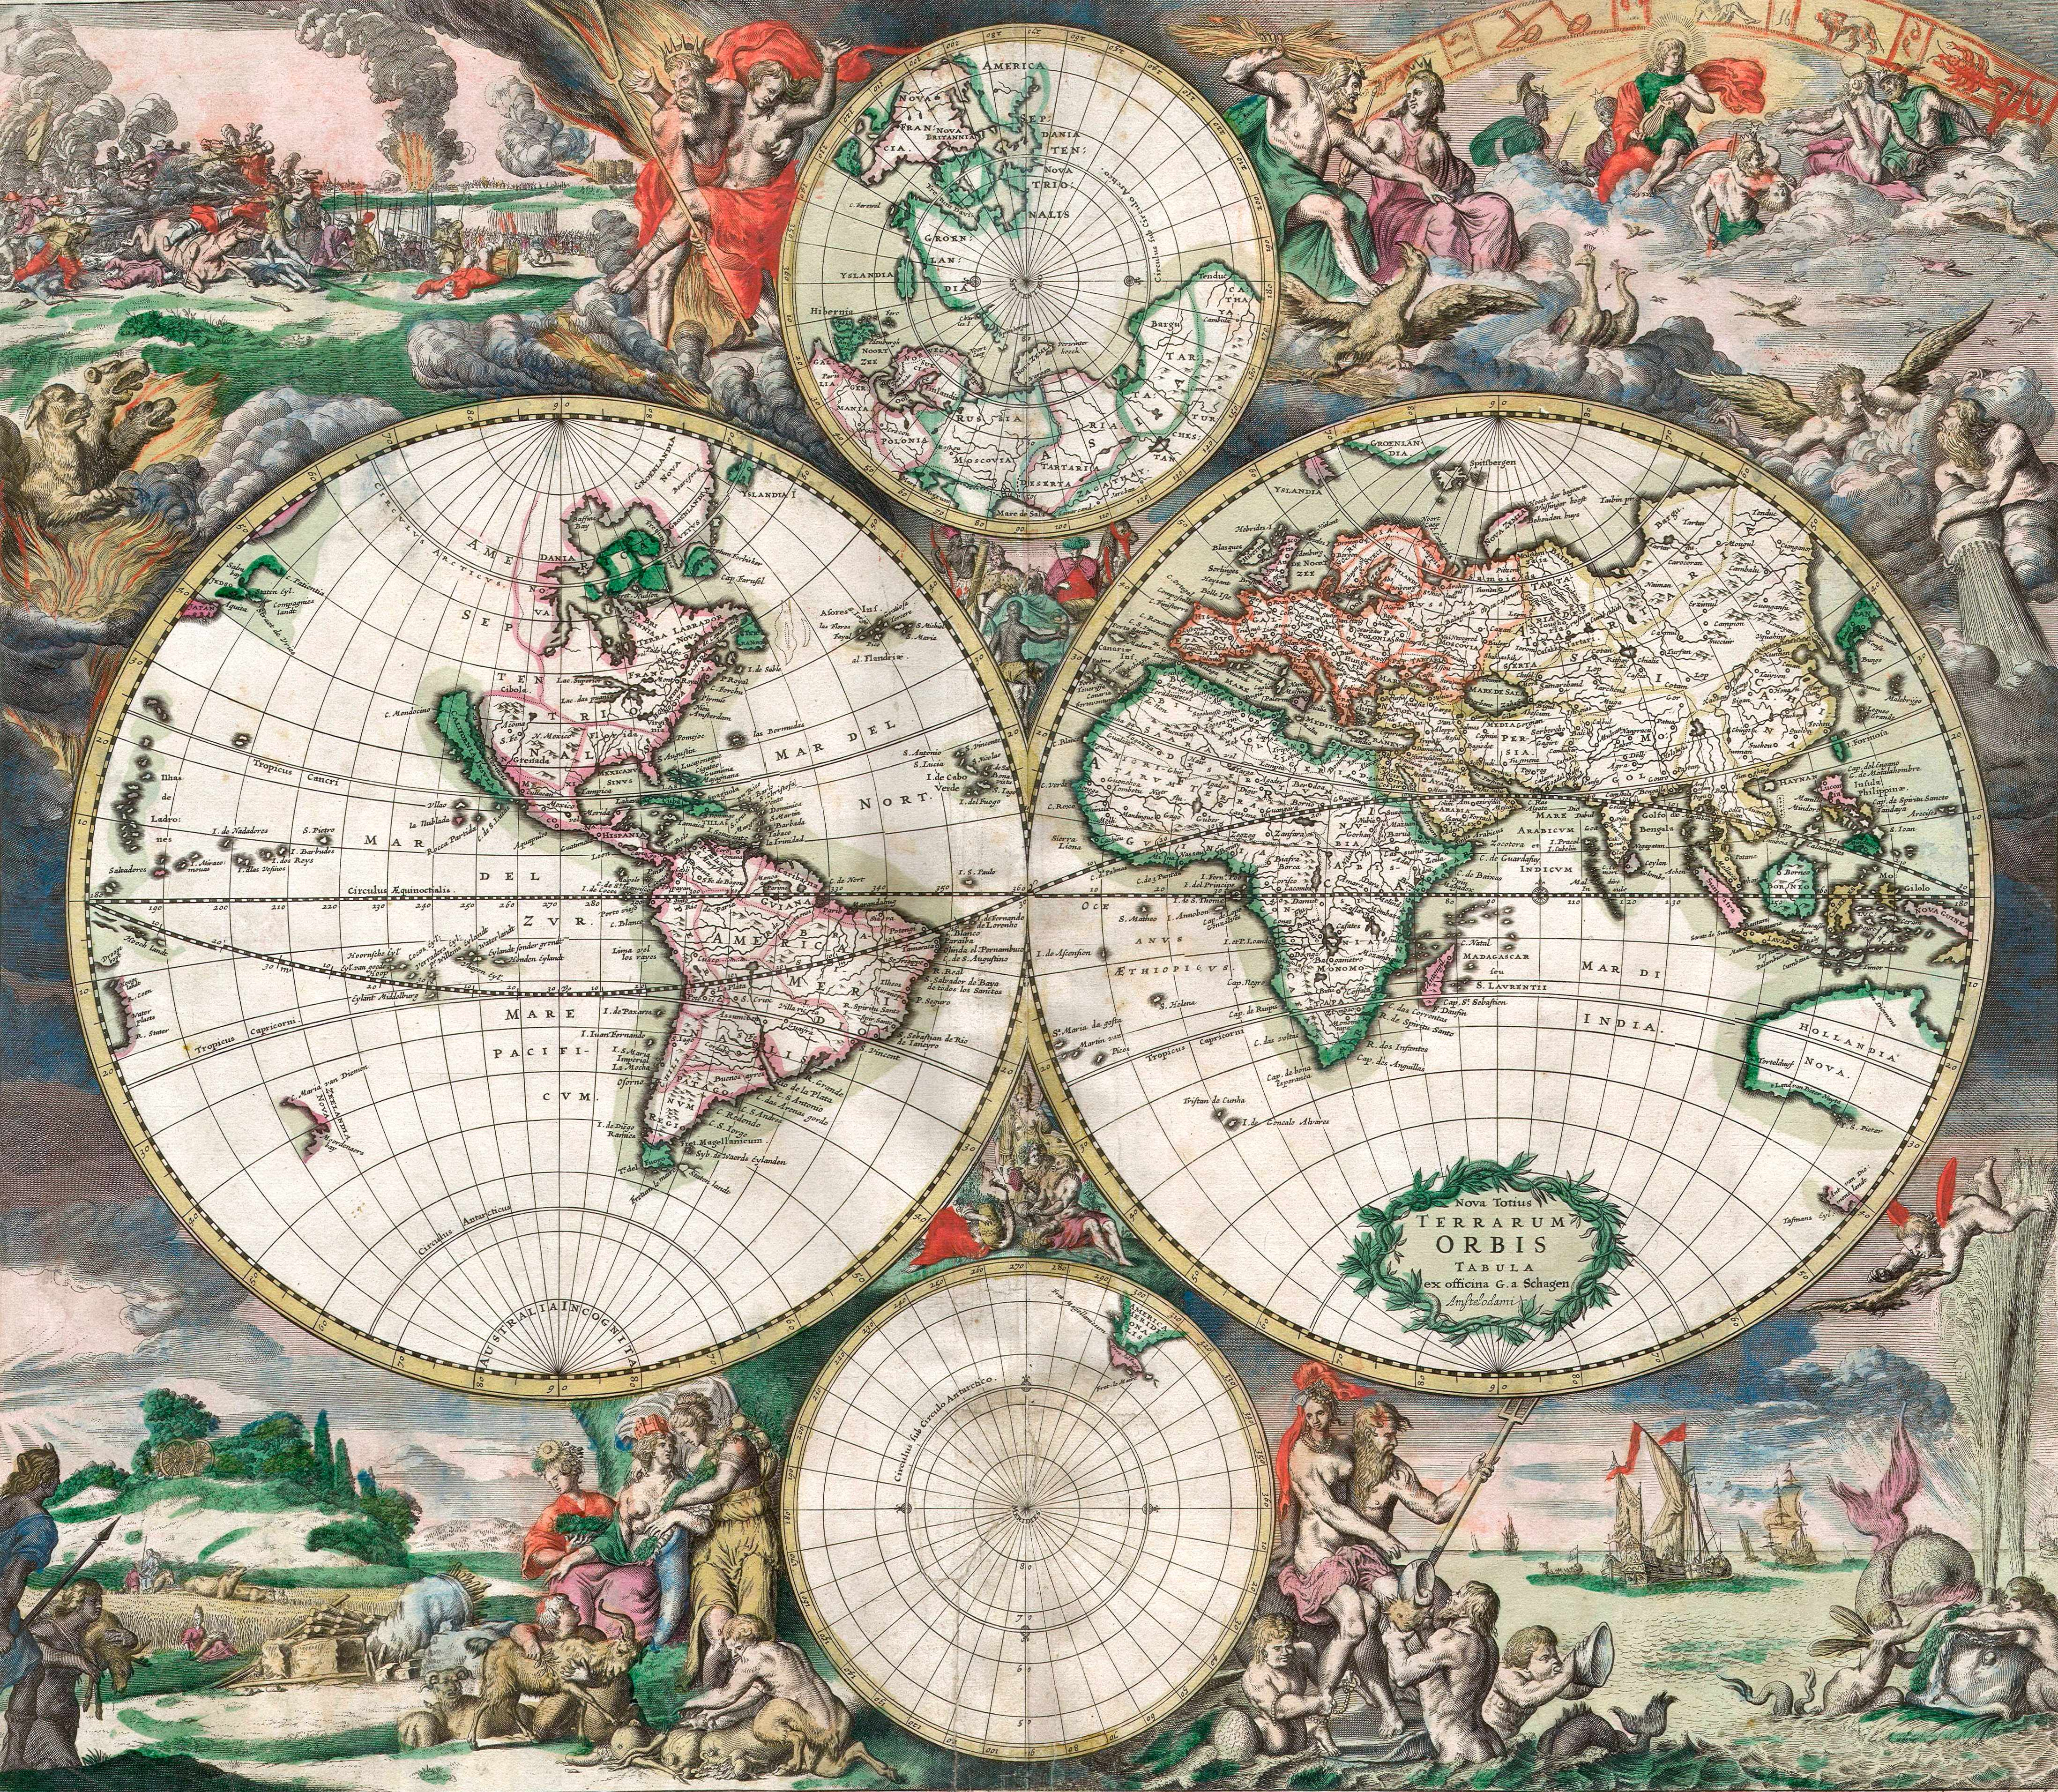 Antique double-hemisphere map of the world, complete with landscapes and mythological scenes. (GraphicaArtis/Getty Images)